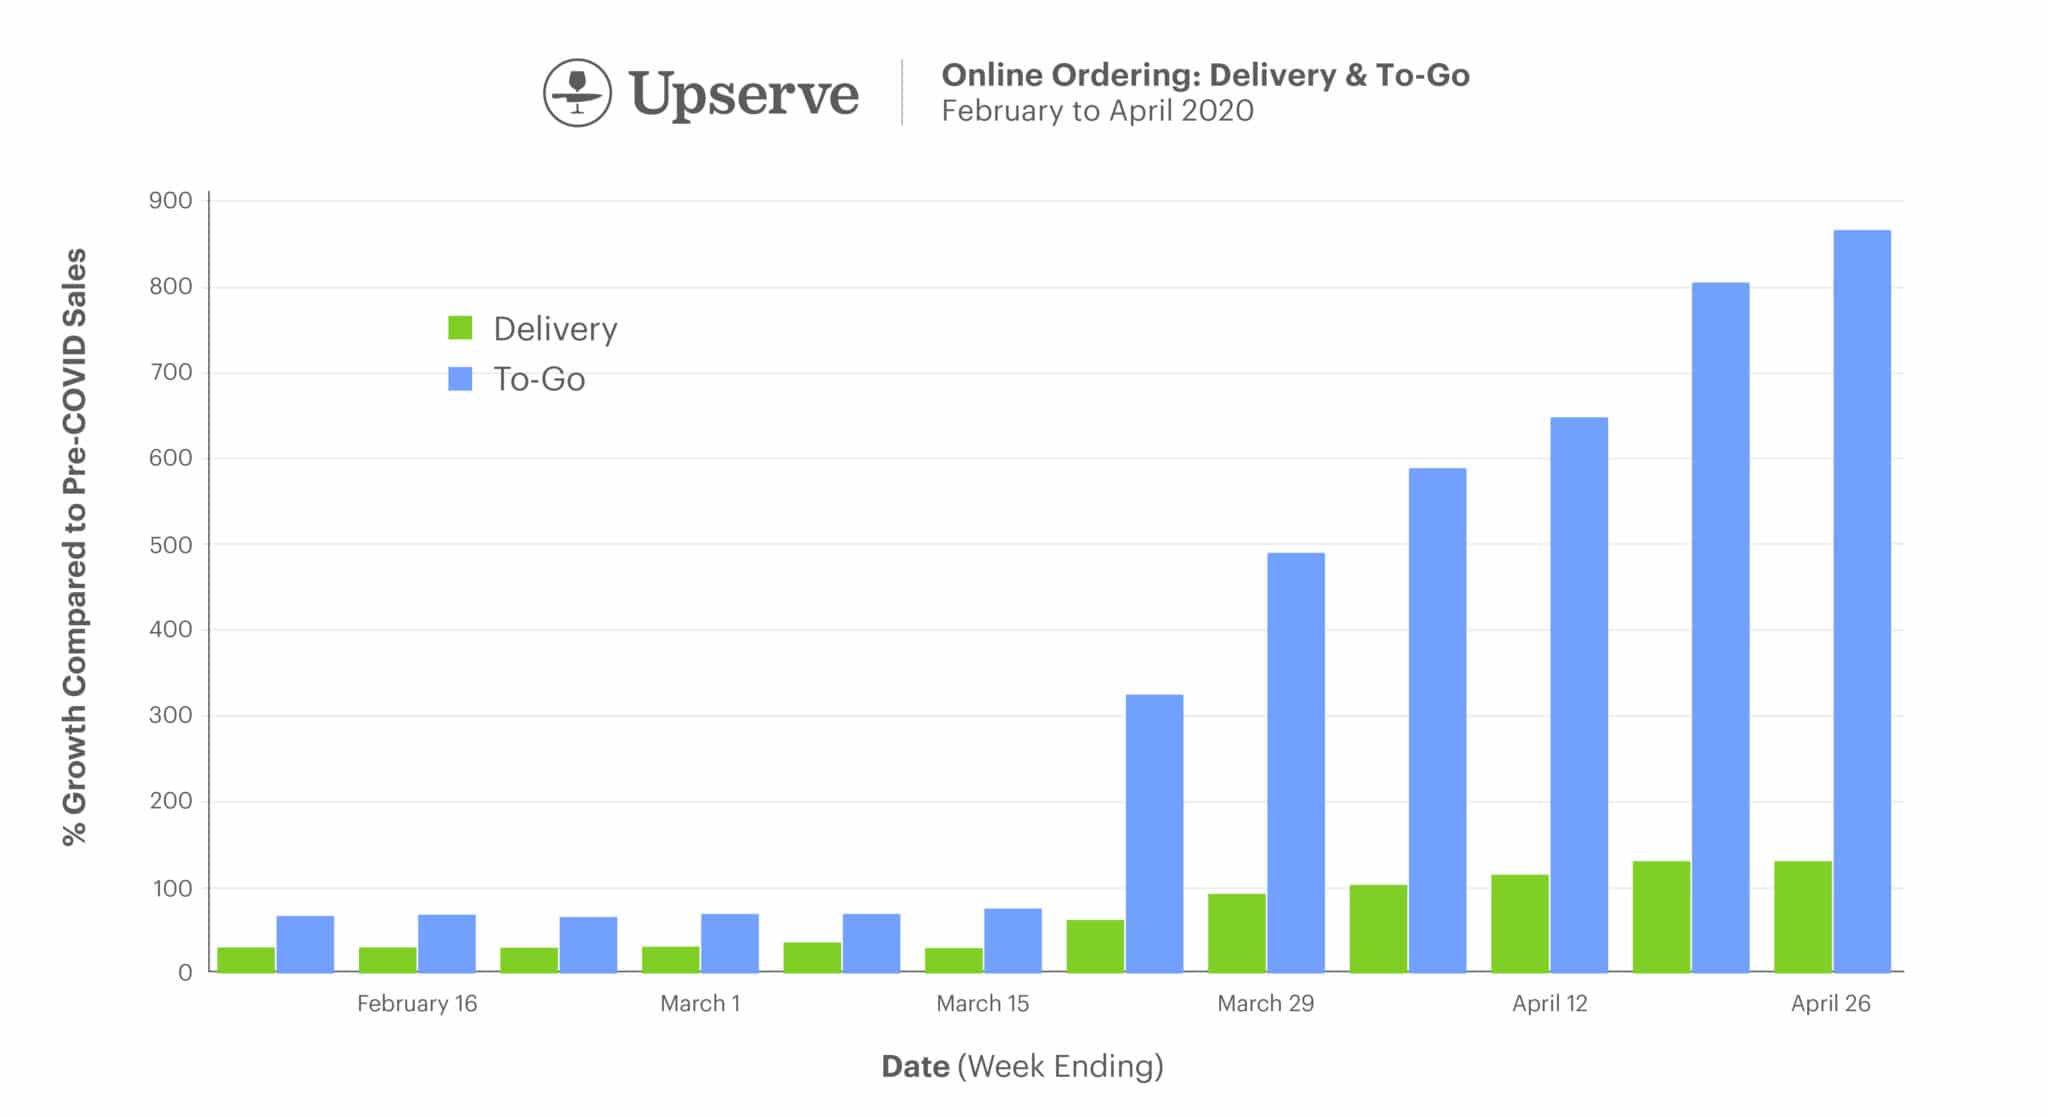 Upserve Online Ordering: To-go vs. Delivery